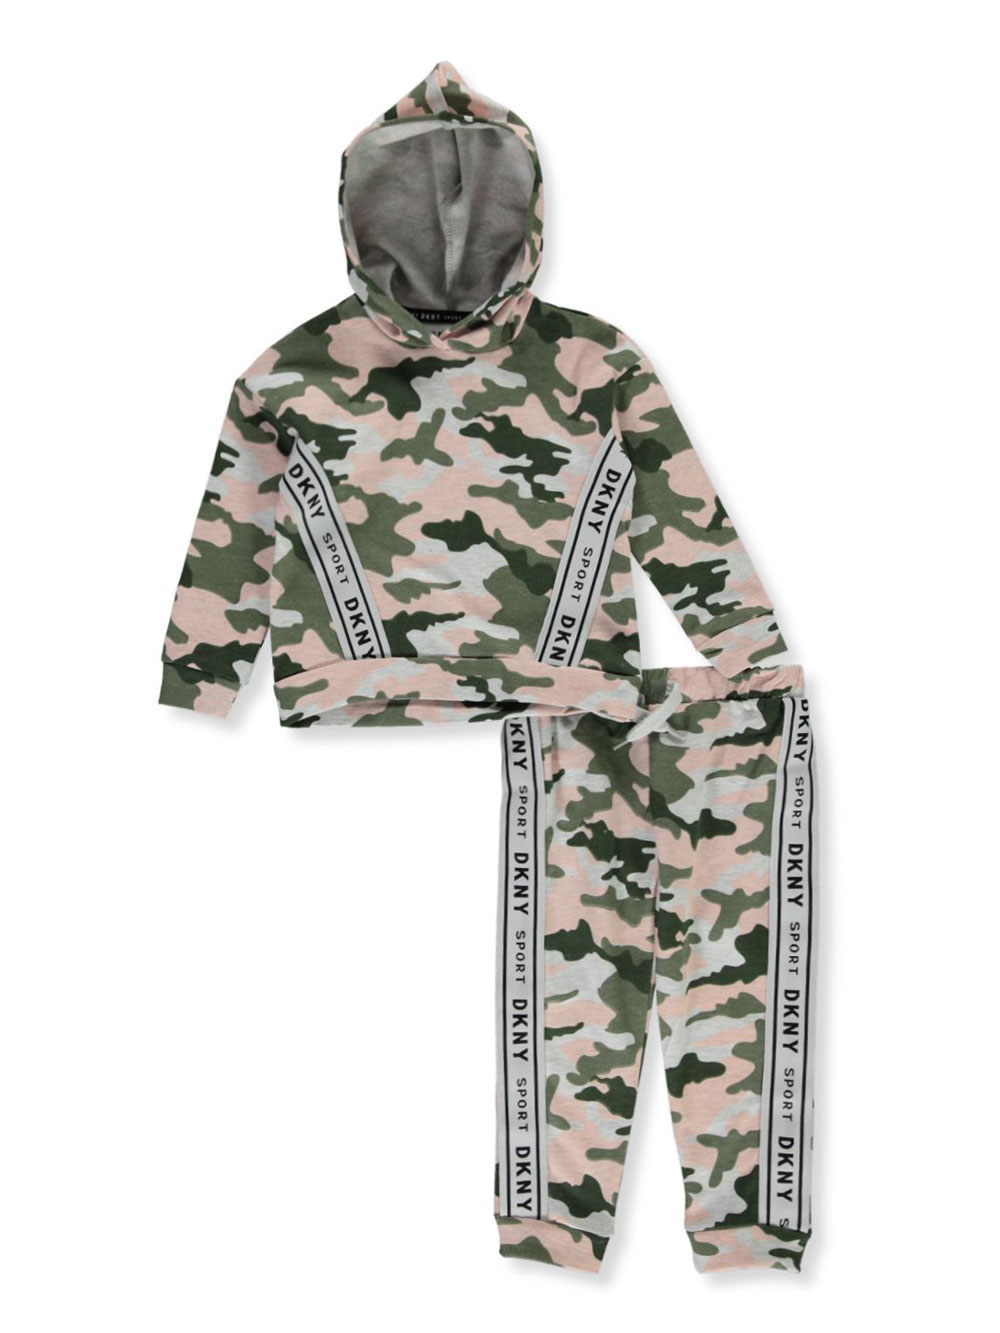 Girls' Camo Taped 2-Piece Sweatsuit Outfit